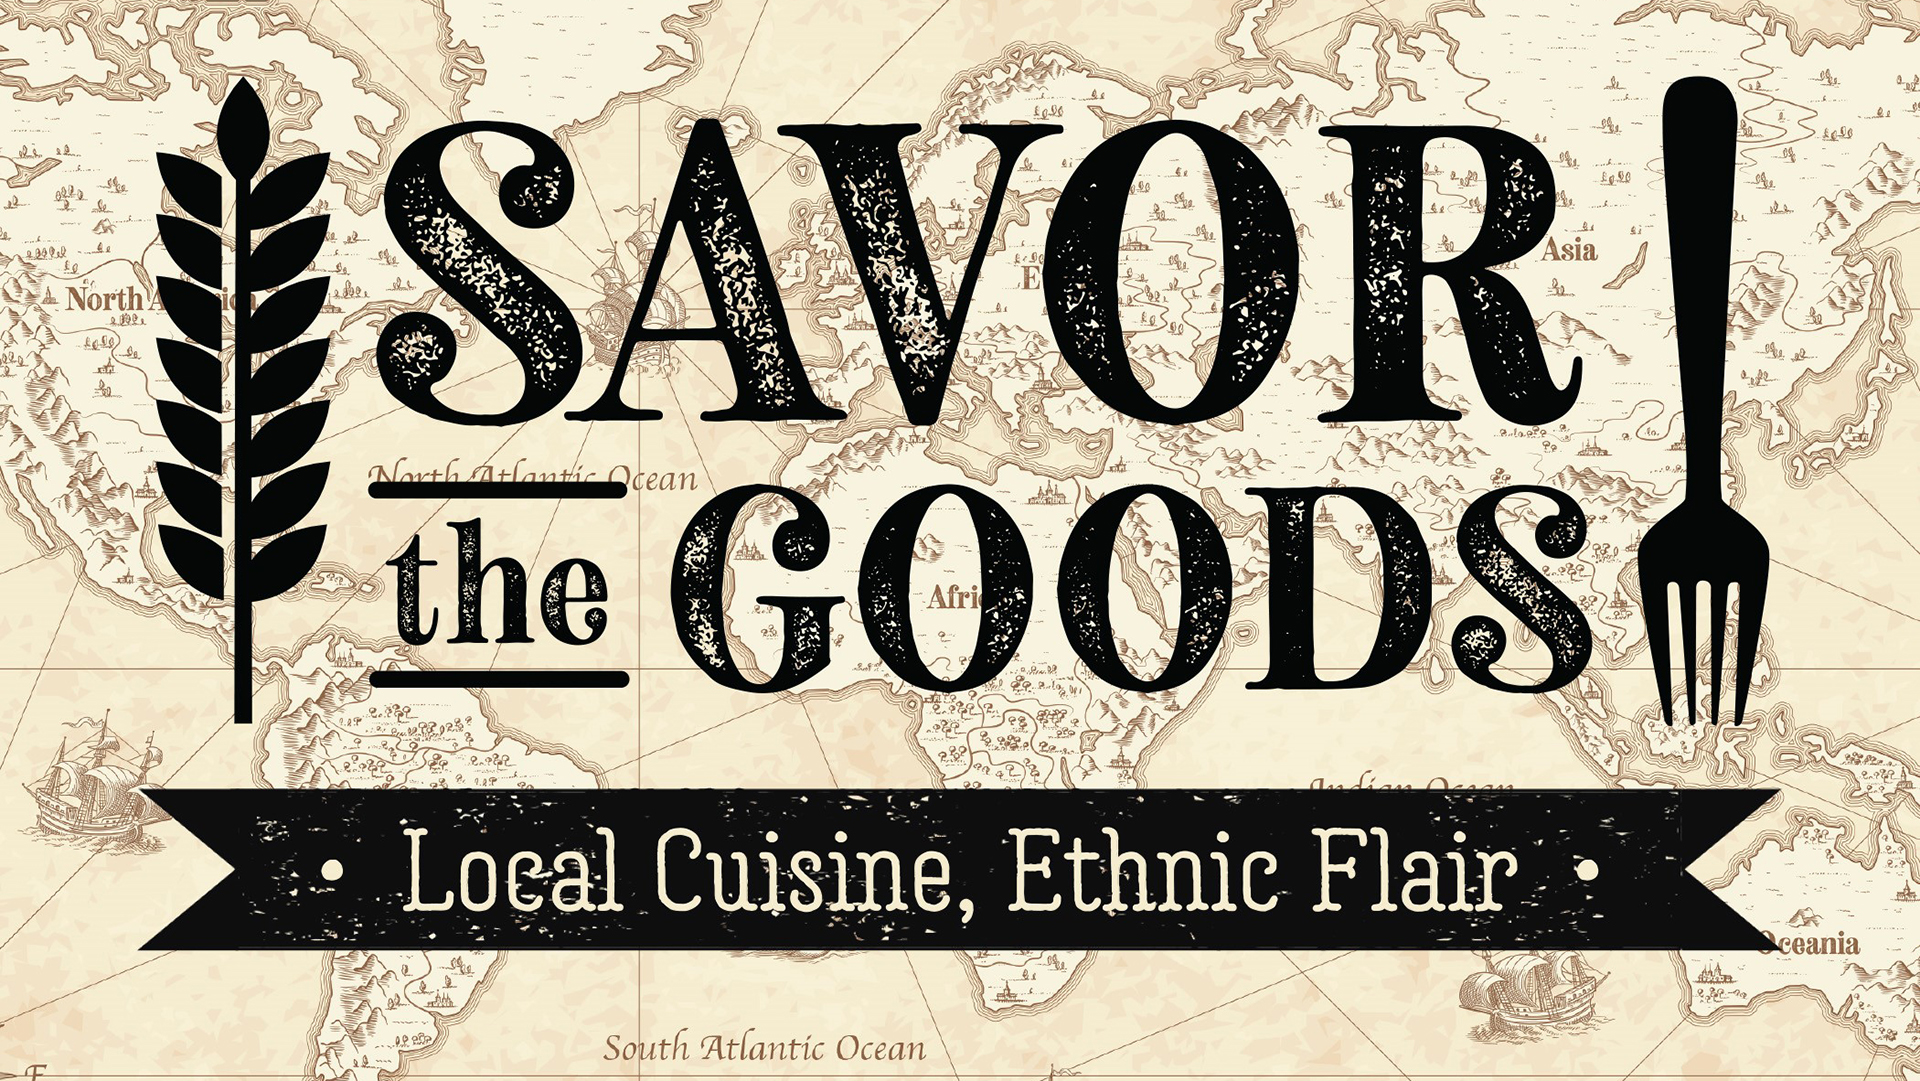 Savor the Goods: Local Cuisine, Ethnic Flair